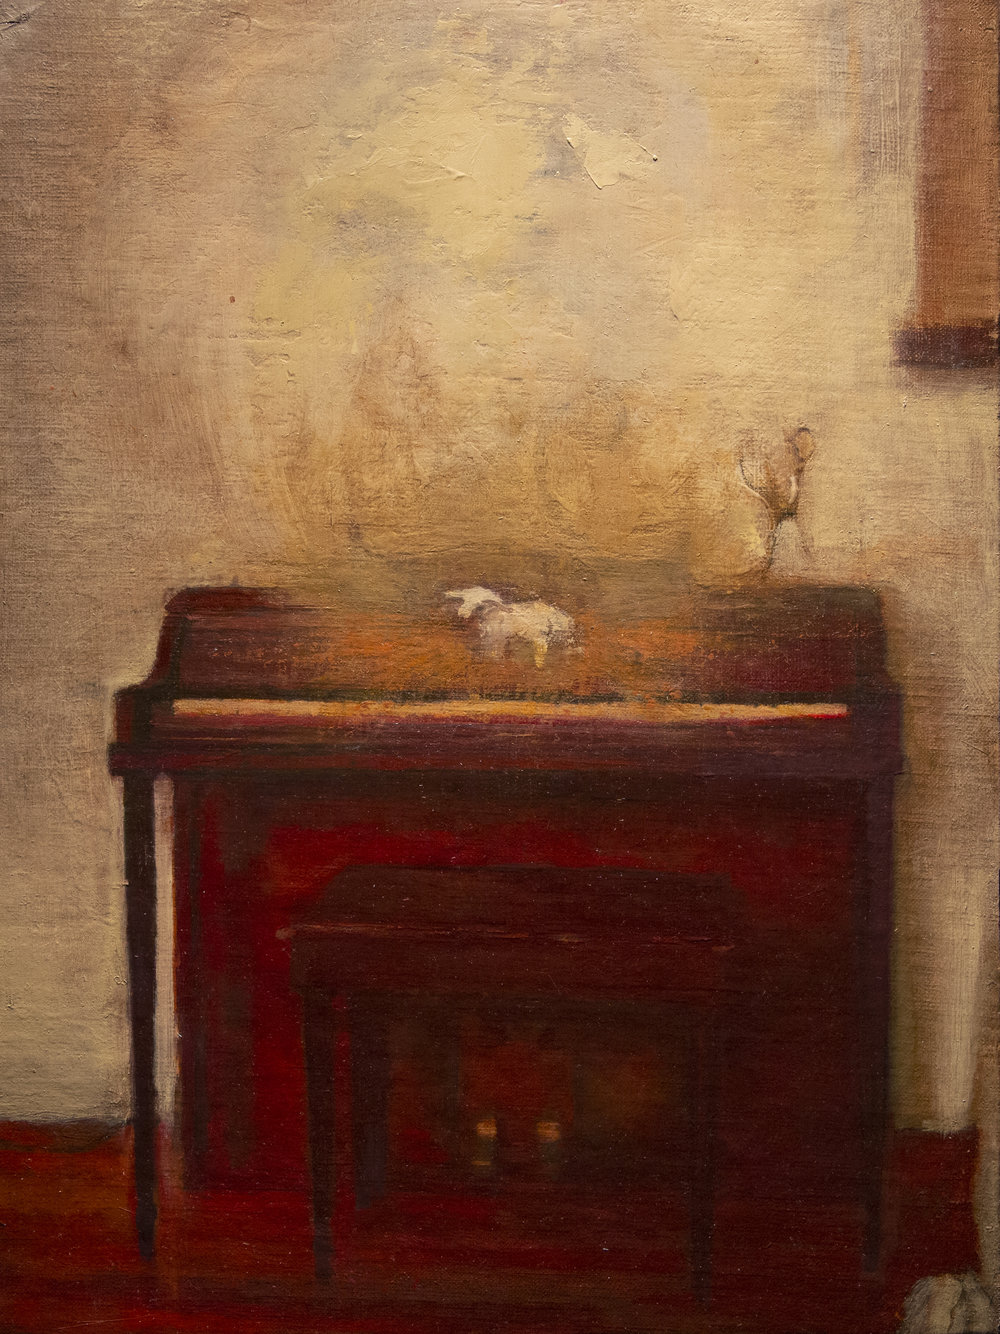 Piano, 8.75 x 11.5 in. Oil on canvas mounted to board.